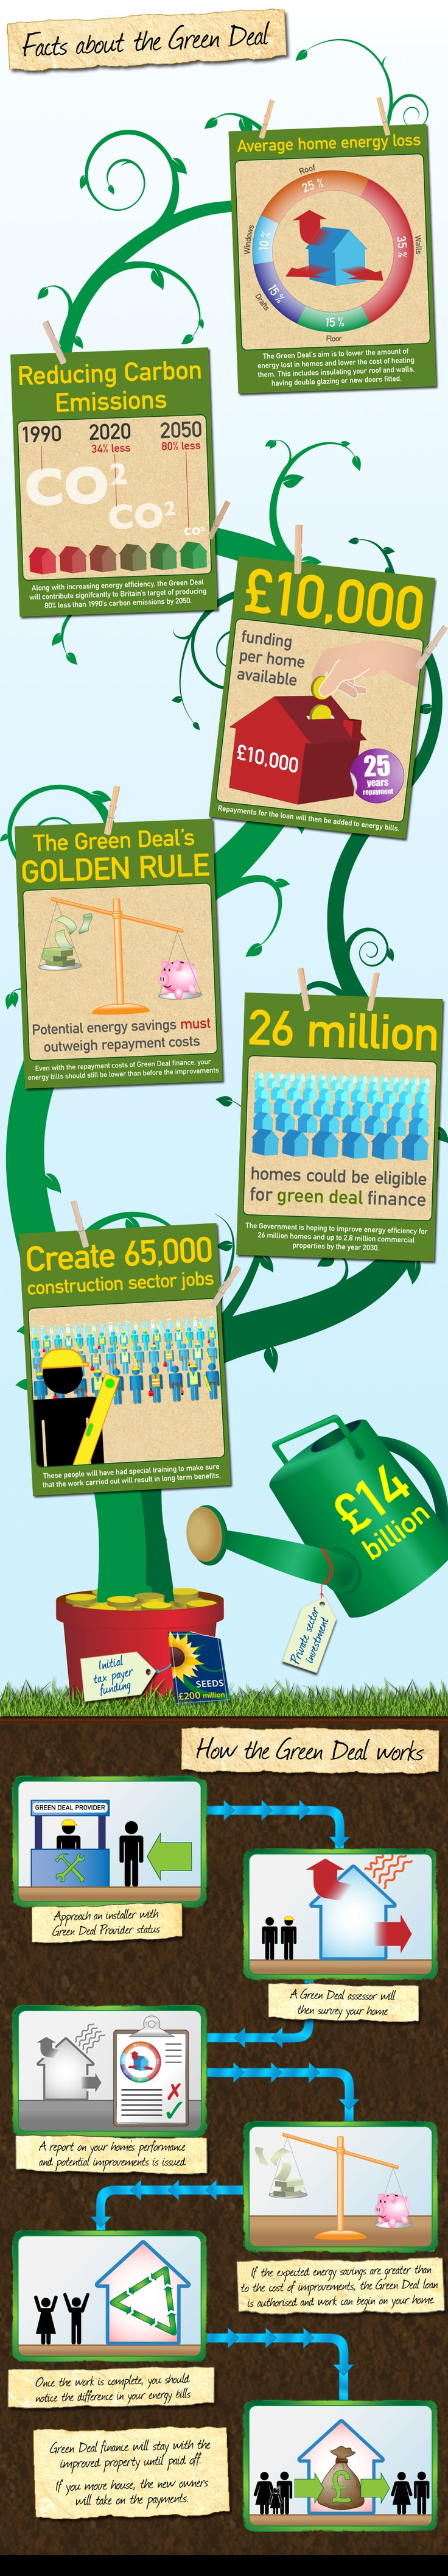 Green Deal facts